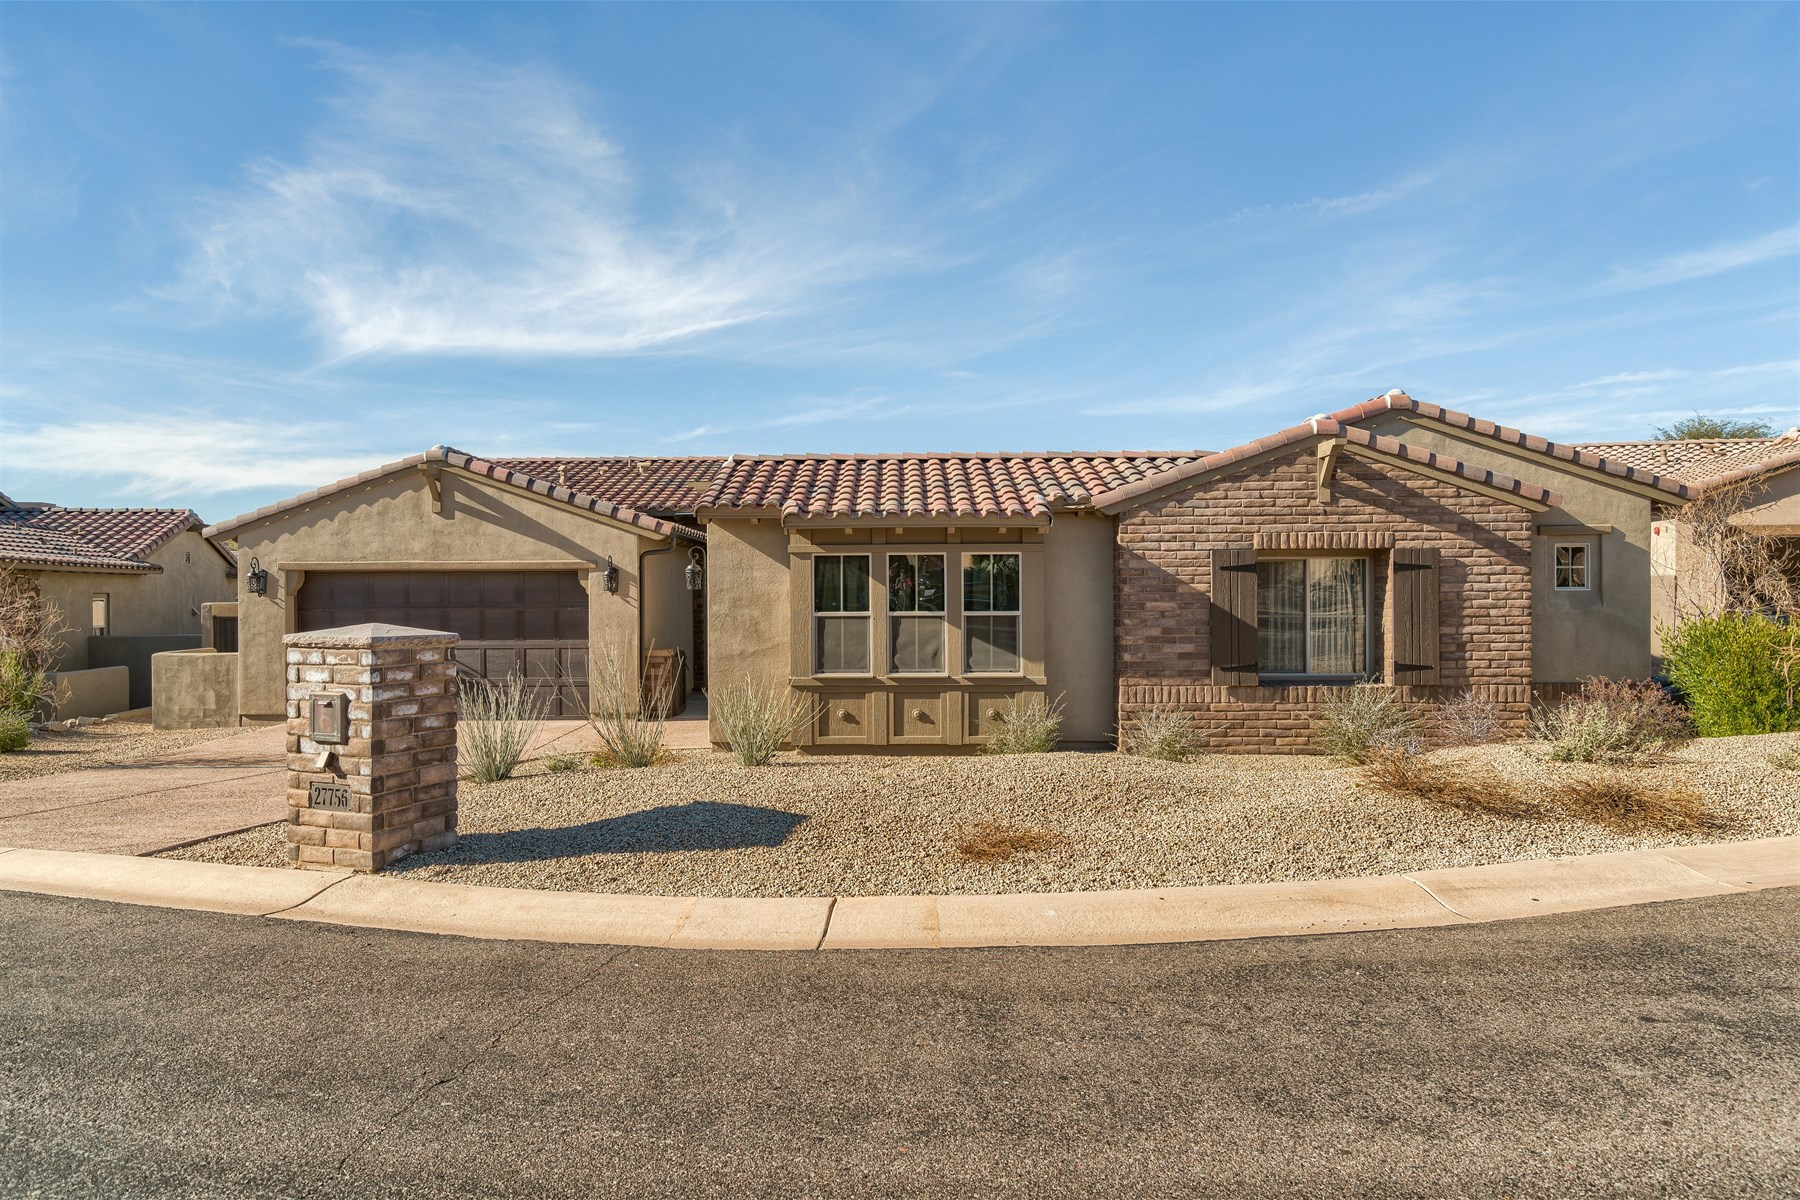 Maison unifamiliale pour l Vente à Brand new home in the gated community of Quisana at Troon North 27756 N 110th Pl Scottsdale, Arizona, 85262 États-Unis